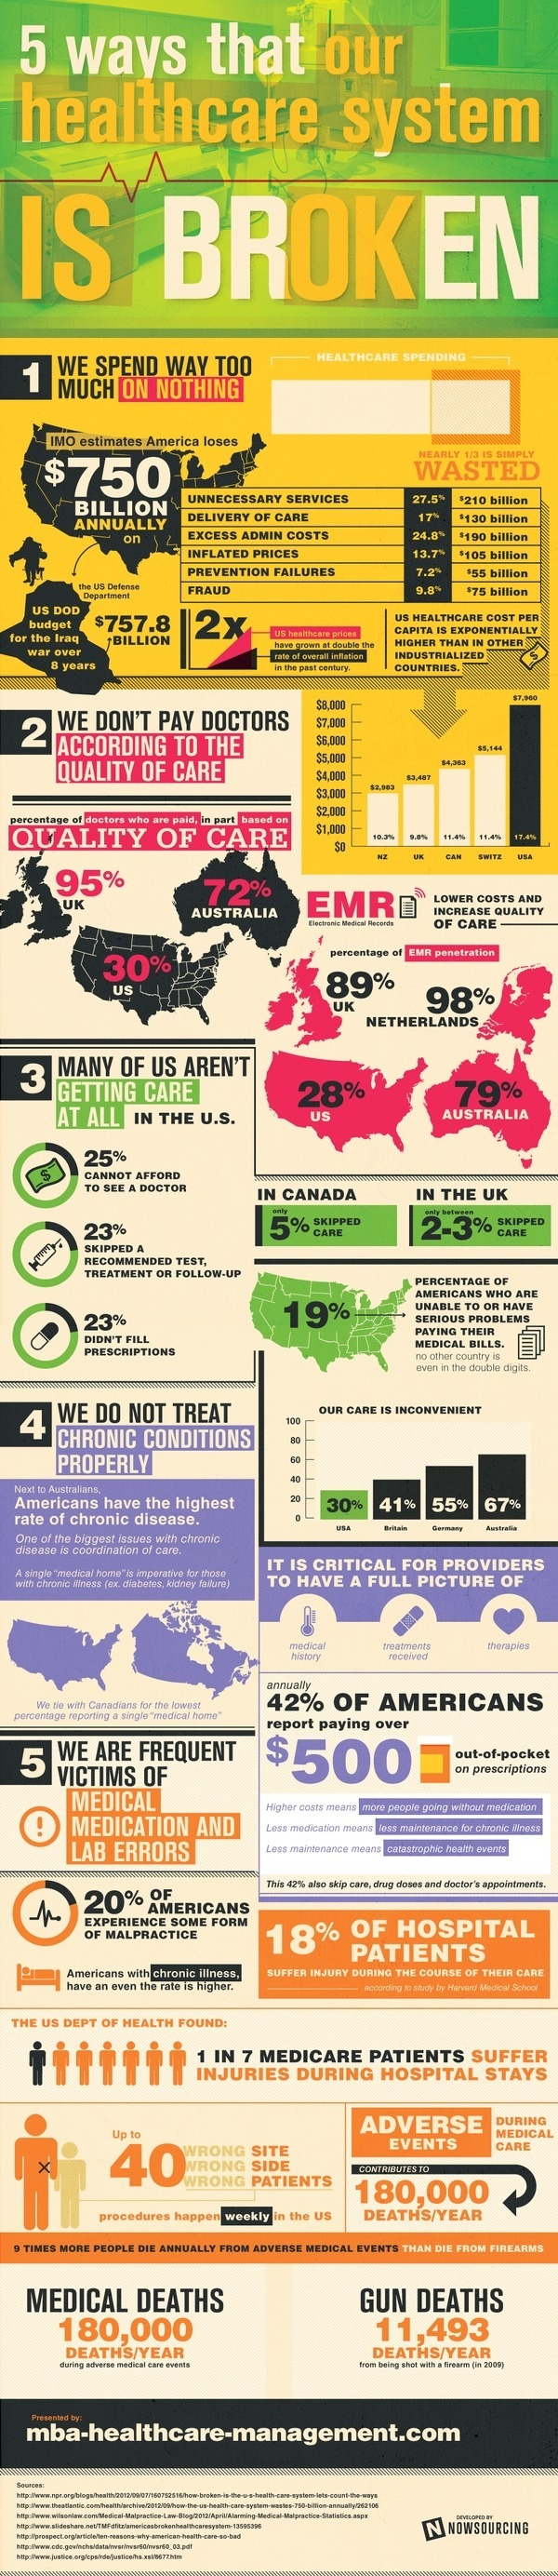 5 Ways Our Healthcare System Is Broken #states #amazing #infographic #neat #waste #finances #help #healthcare #united #broken #america #poor #cool